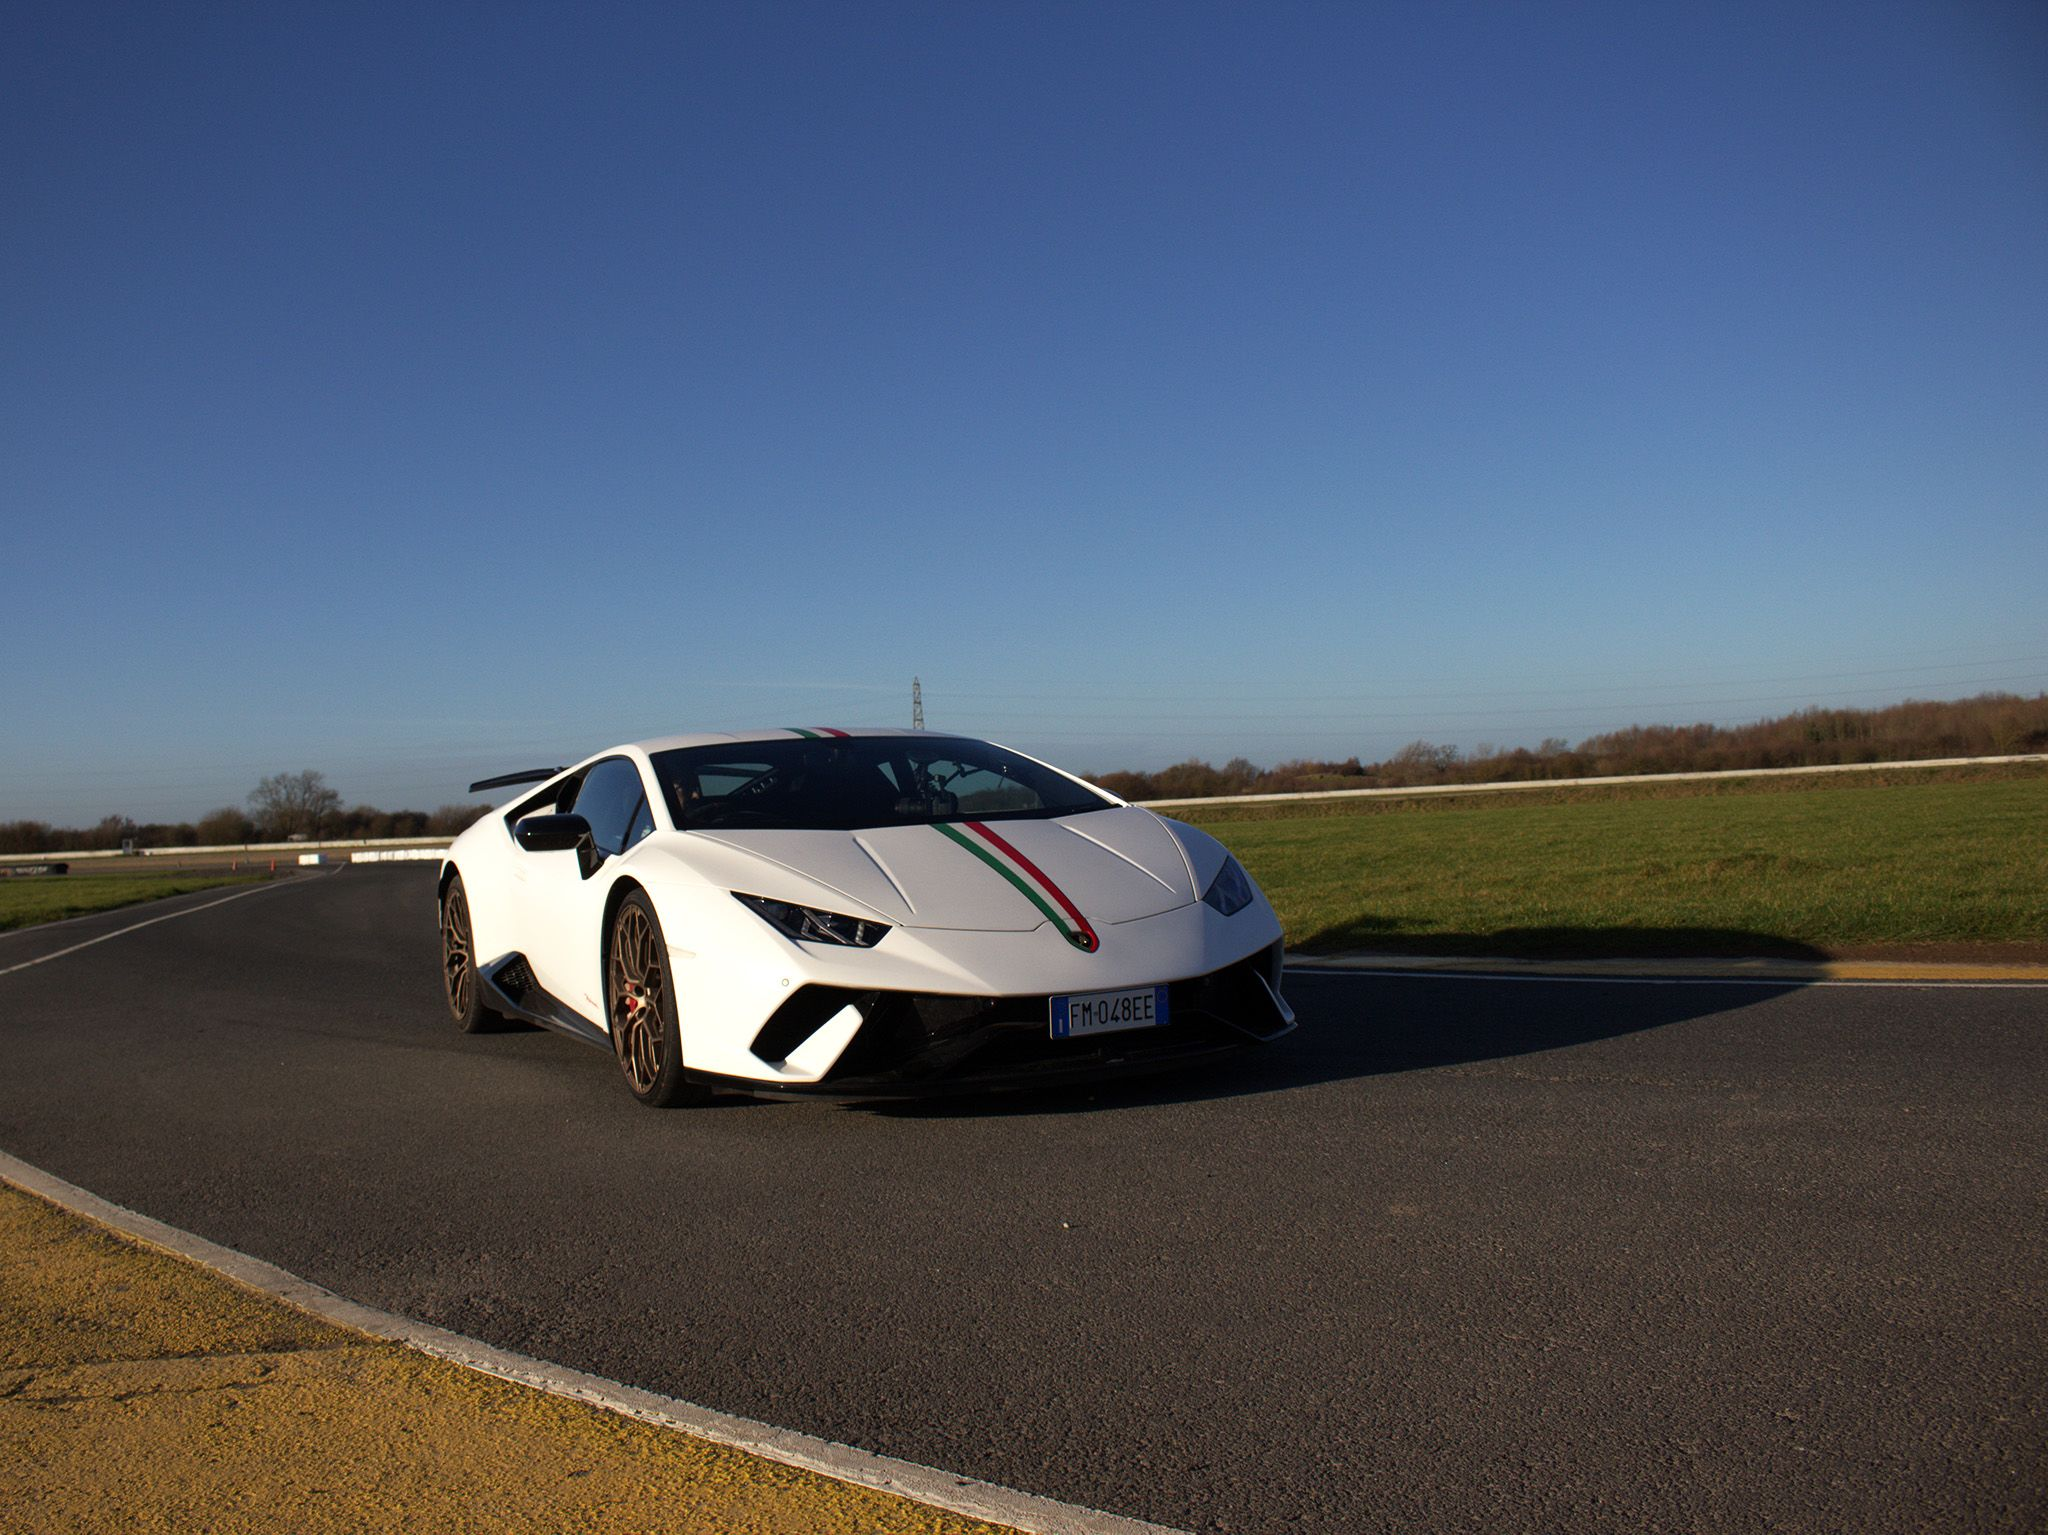 The Lamborghini at track day.  This image is from Scrapyard Supercar. [Photo of the day - June 2019]